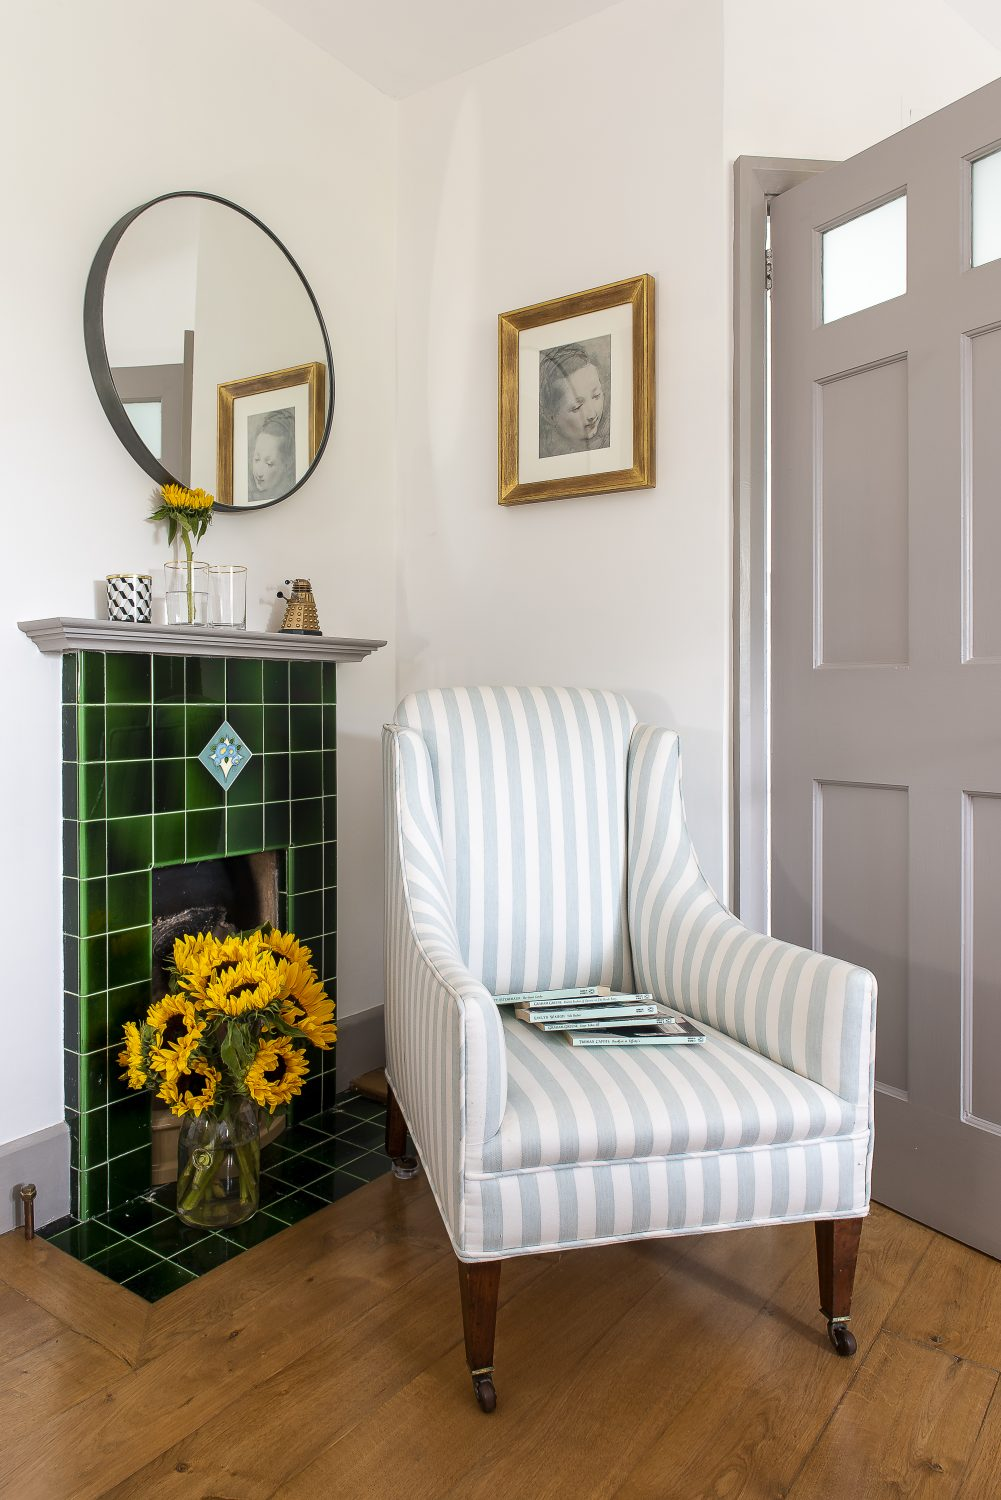 An antique chair sits comfortably by an original tiled fireplace in a guest bedroom